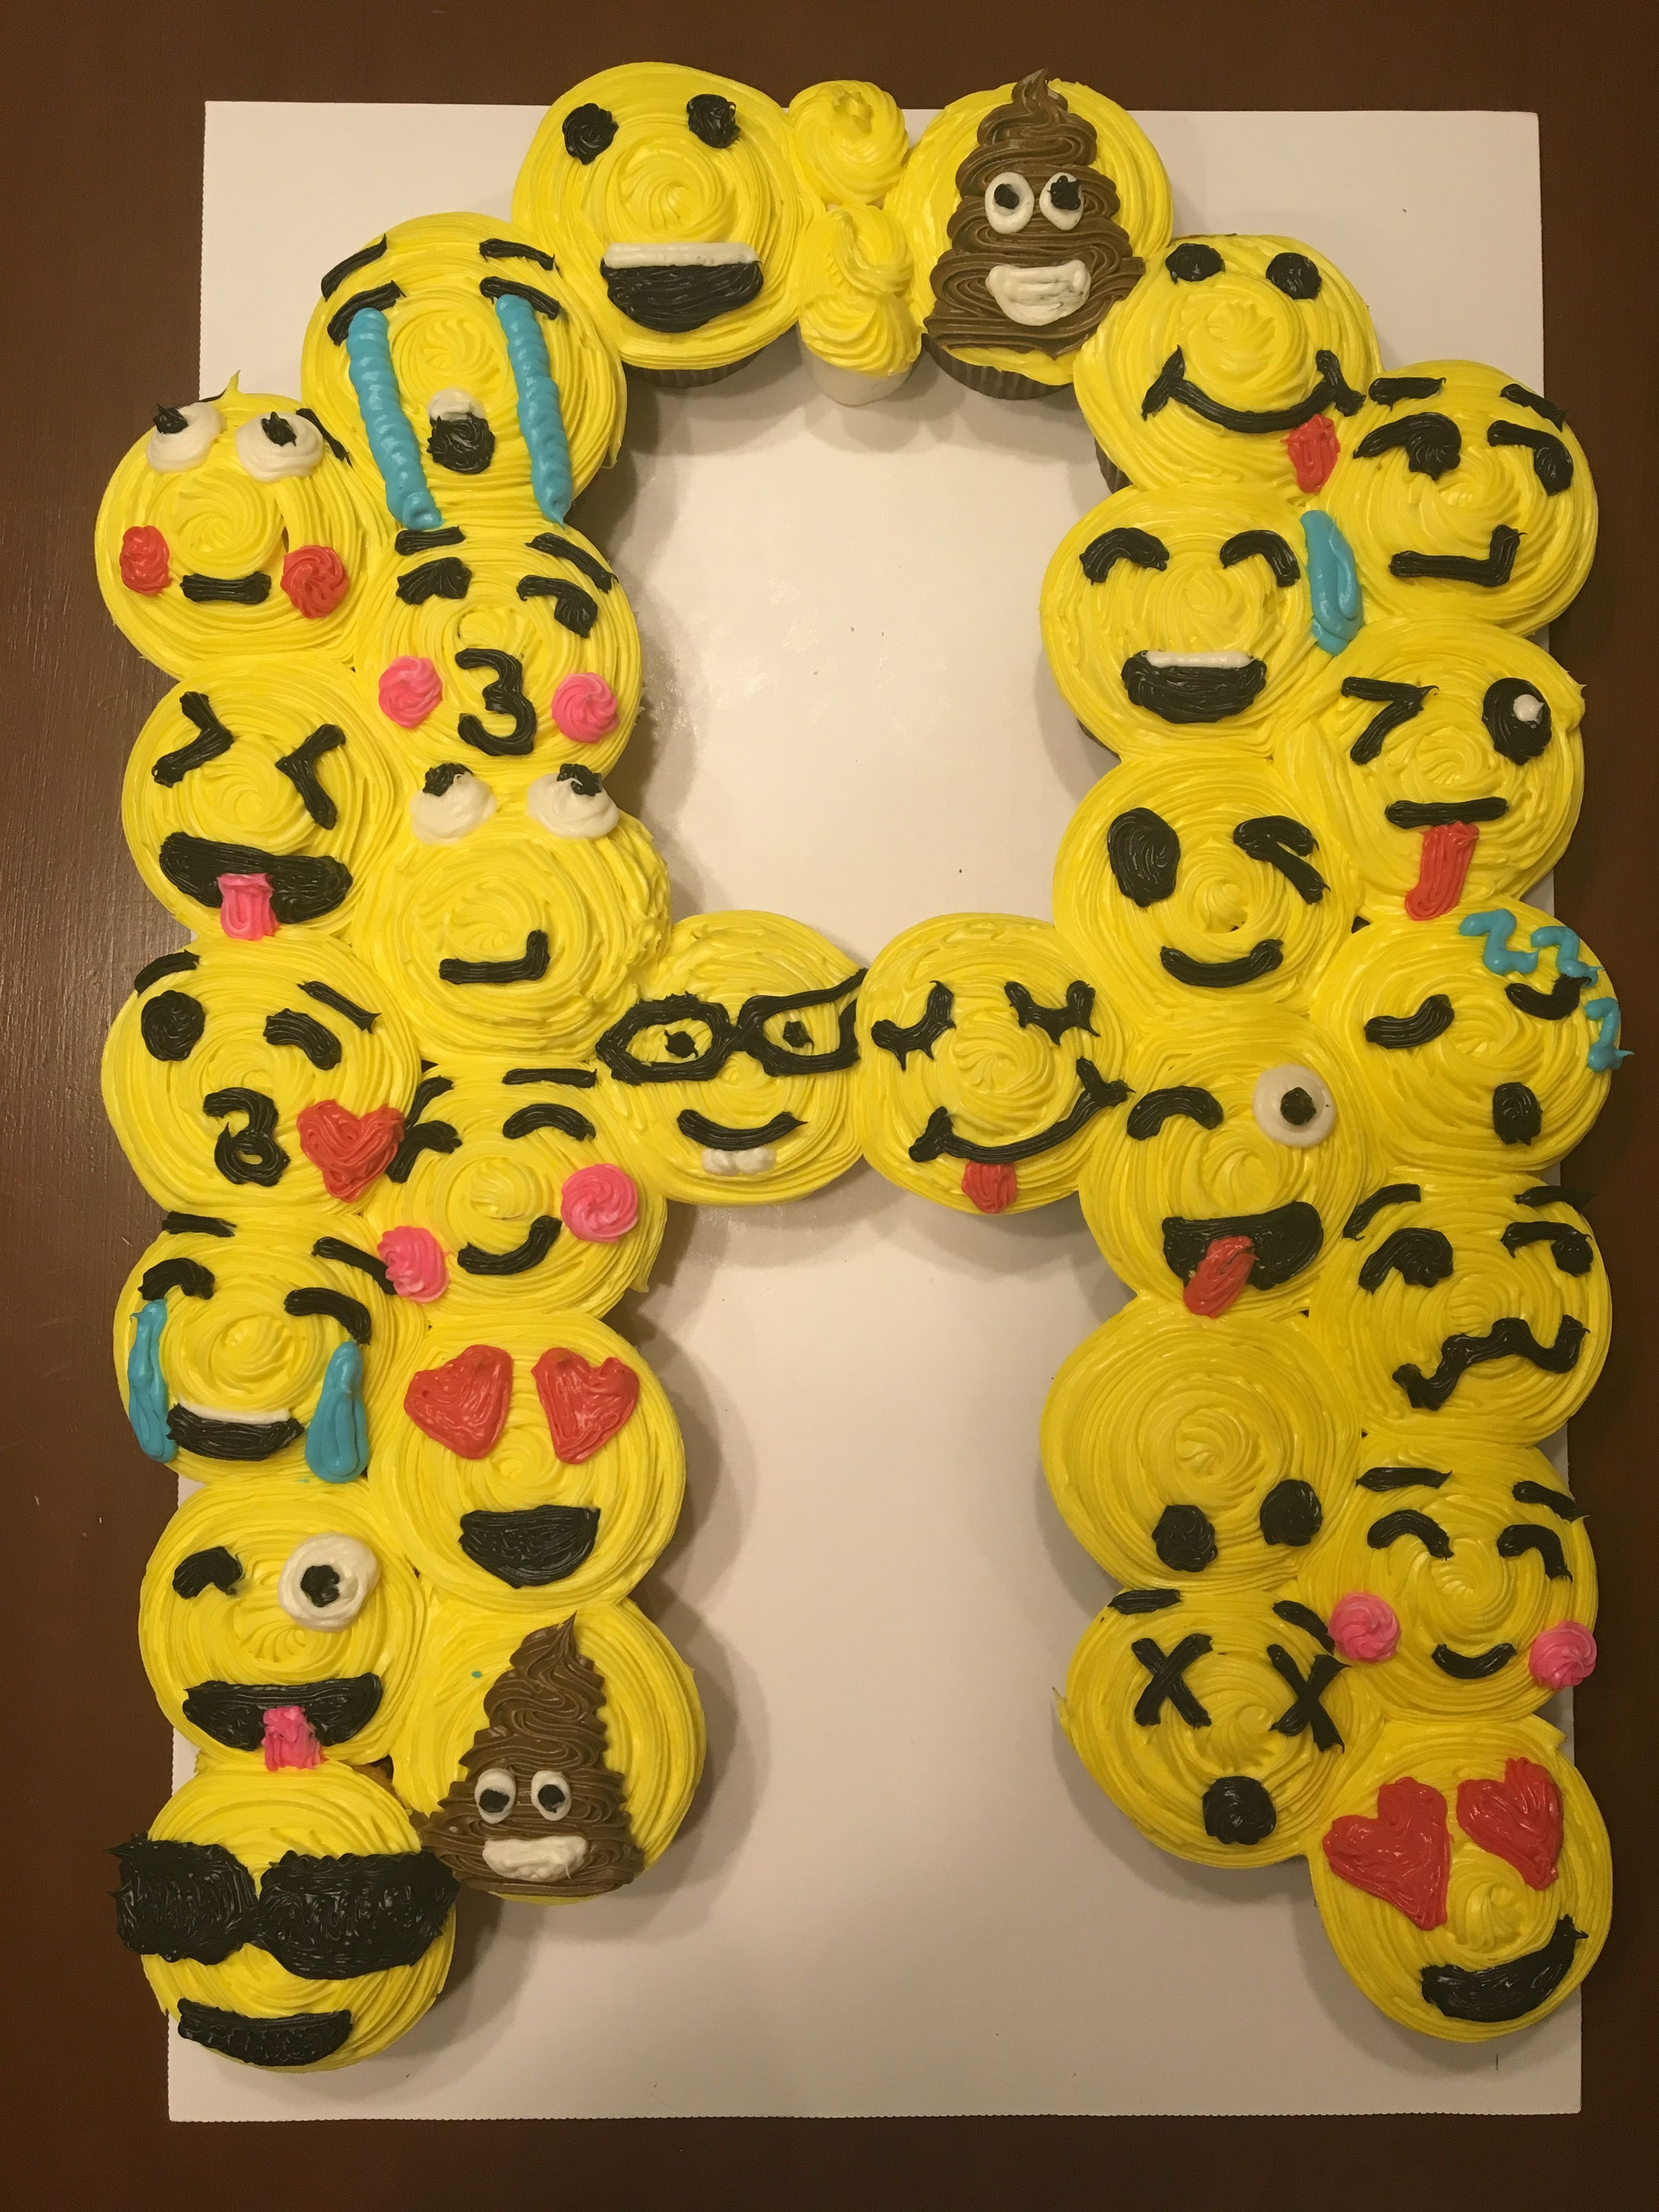 Thumbs Up Emoji Cookie Cutter | Use for Fondant, Dough ...